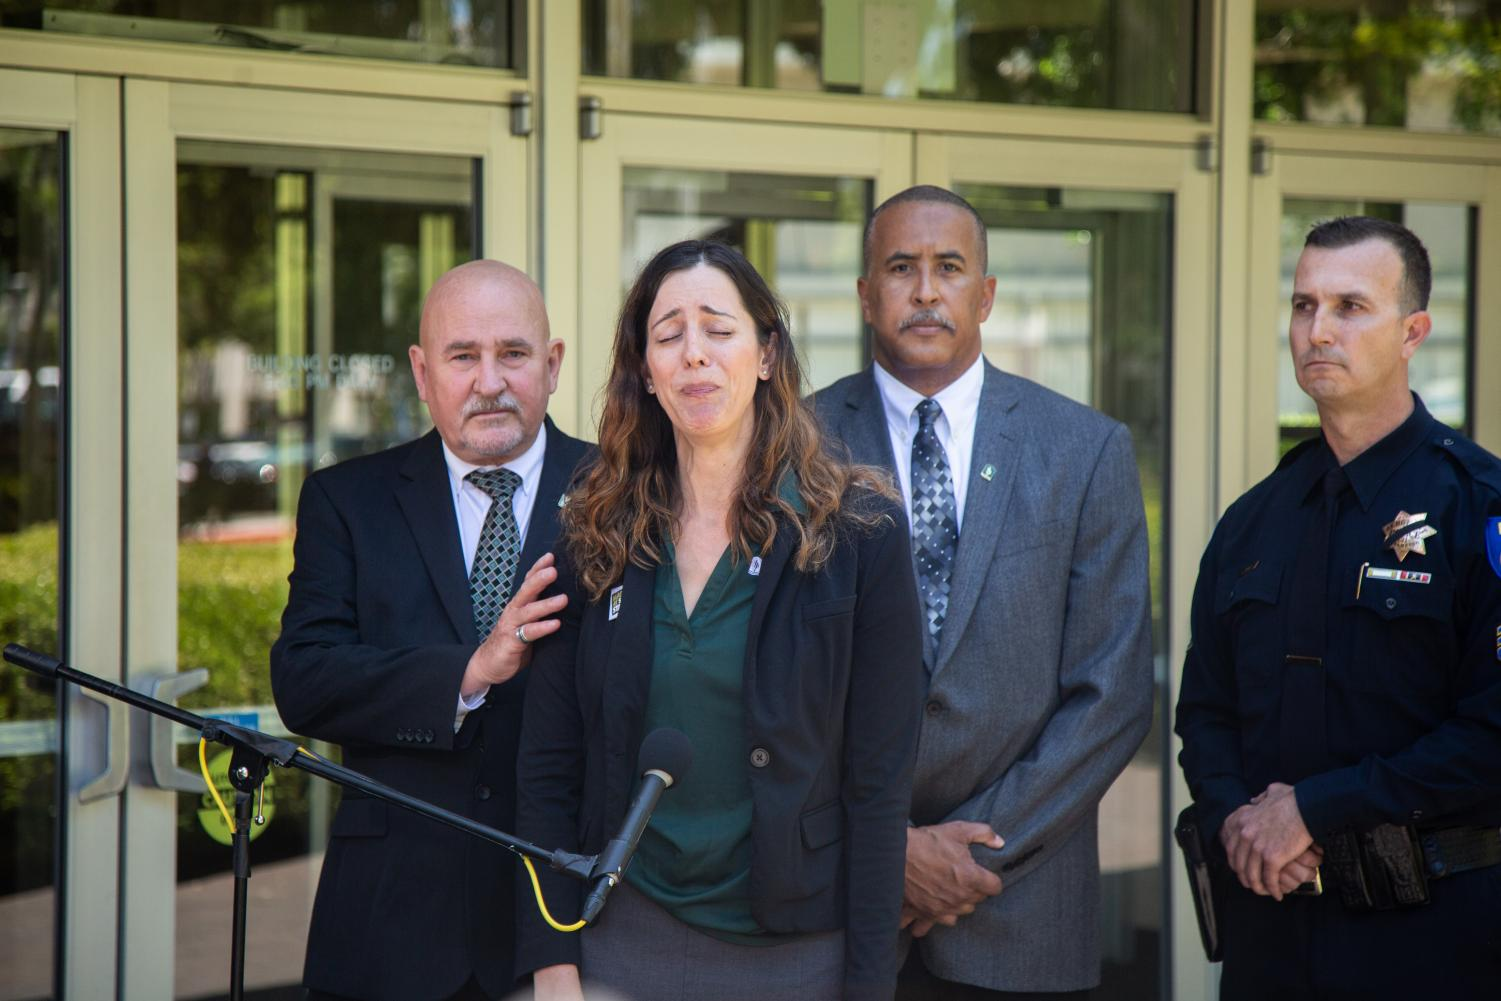 CSUS Career Center Director Melissa Repa talks about Tara O'Sullivan at a press conference in front of Sacramento Hall on Thursday, June 20. O'Sullivan was a Sacramento Police officer and Sac State alumna was killed in the line of duty Wednesday night while responding to a domestic violence call.